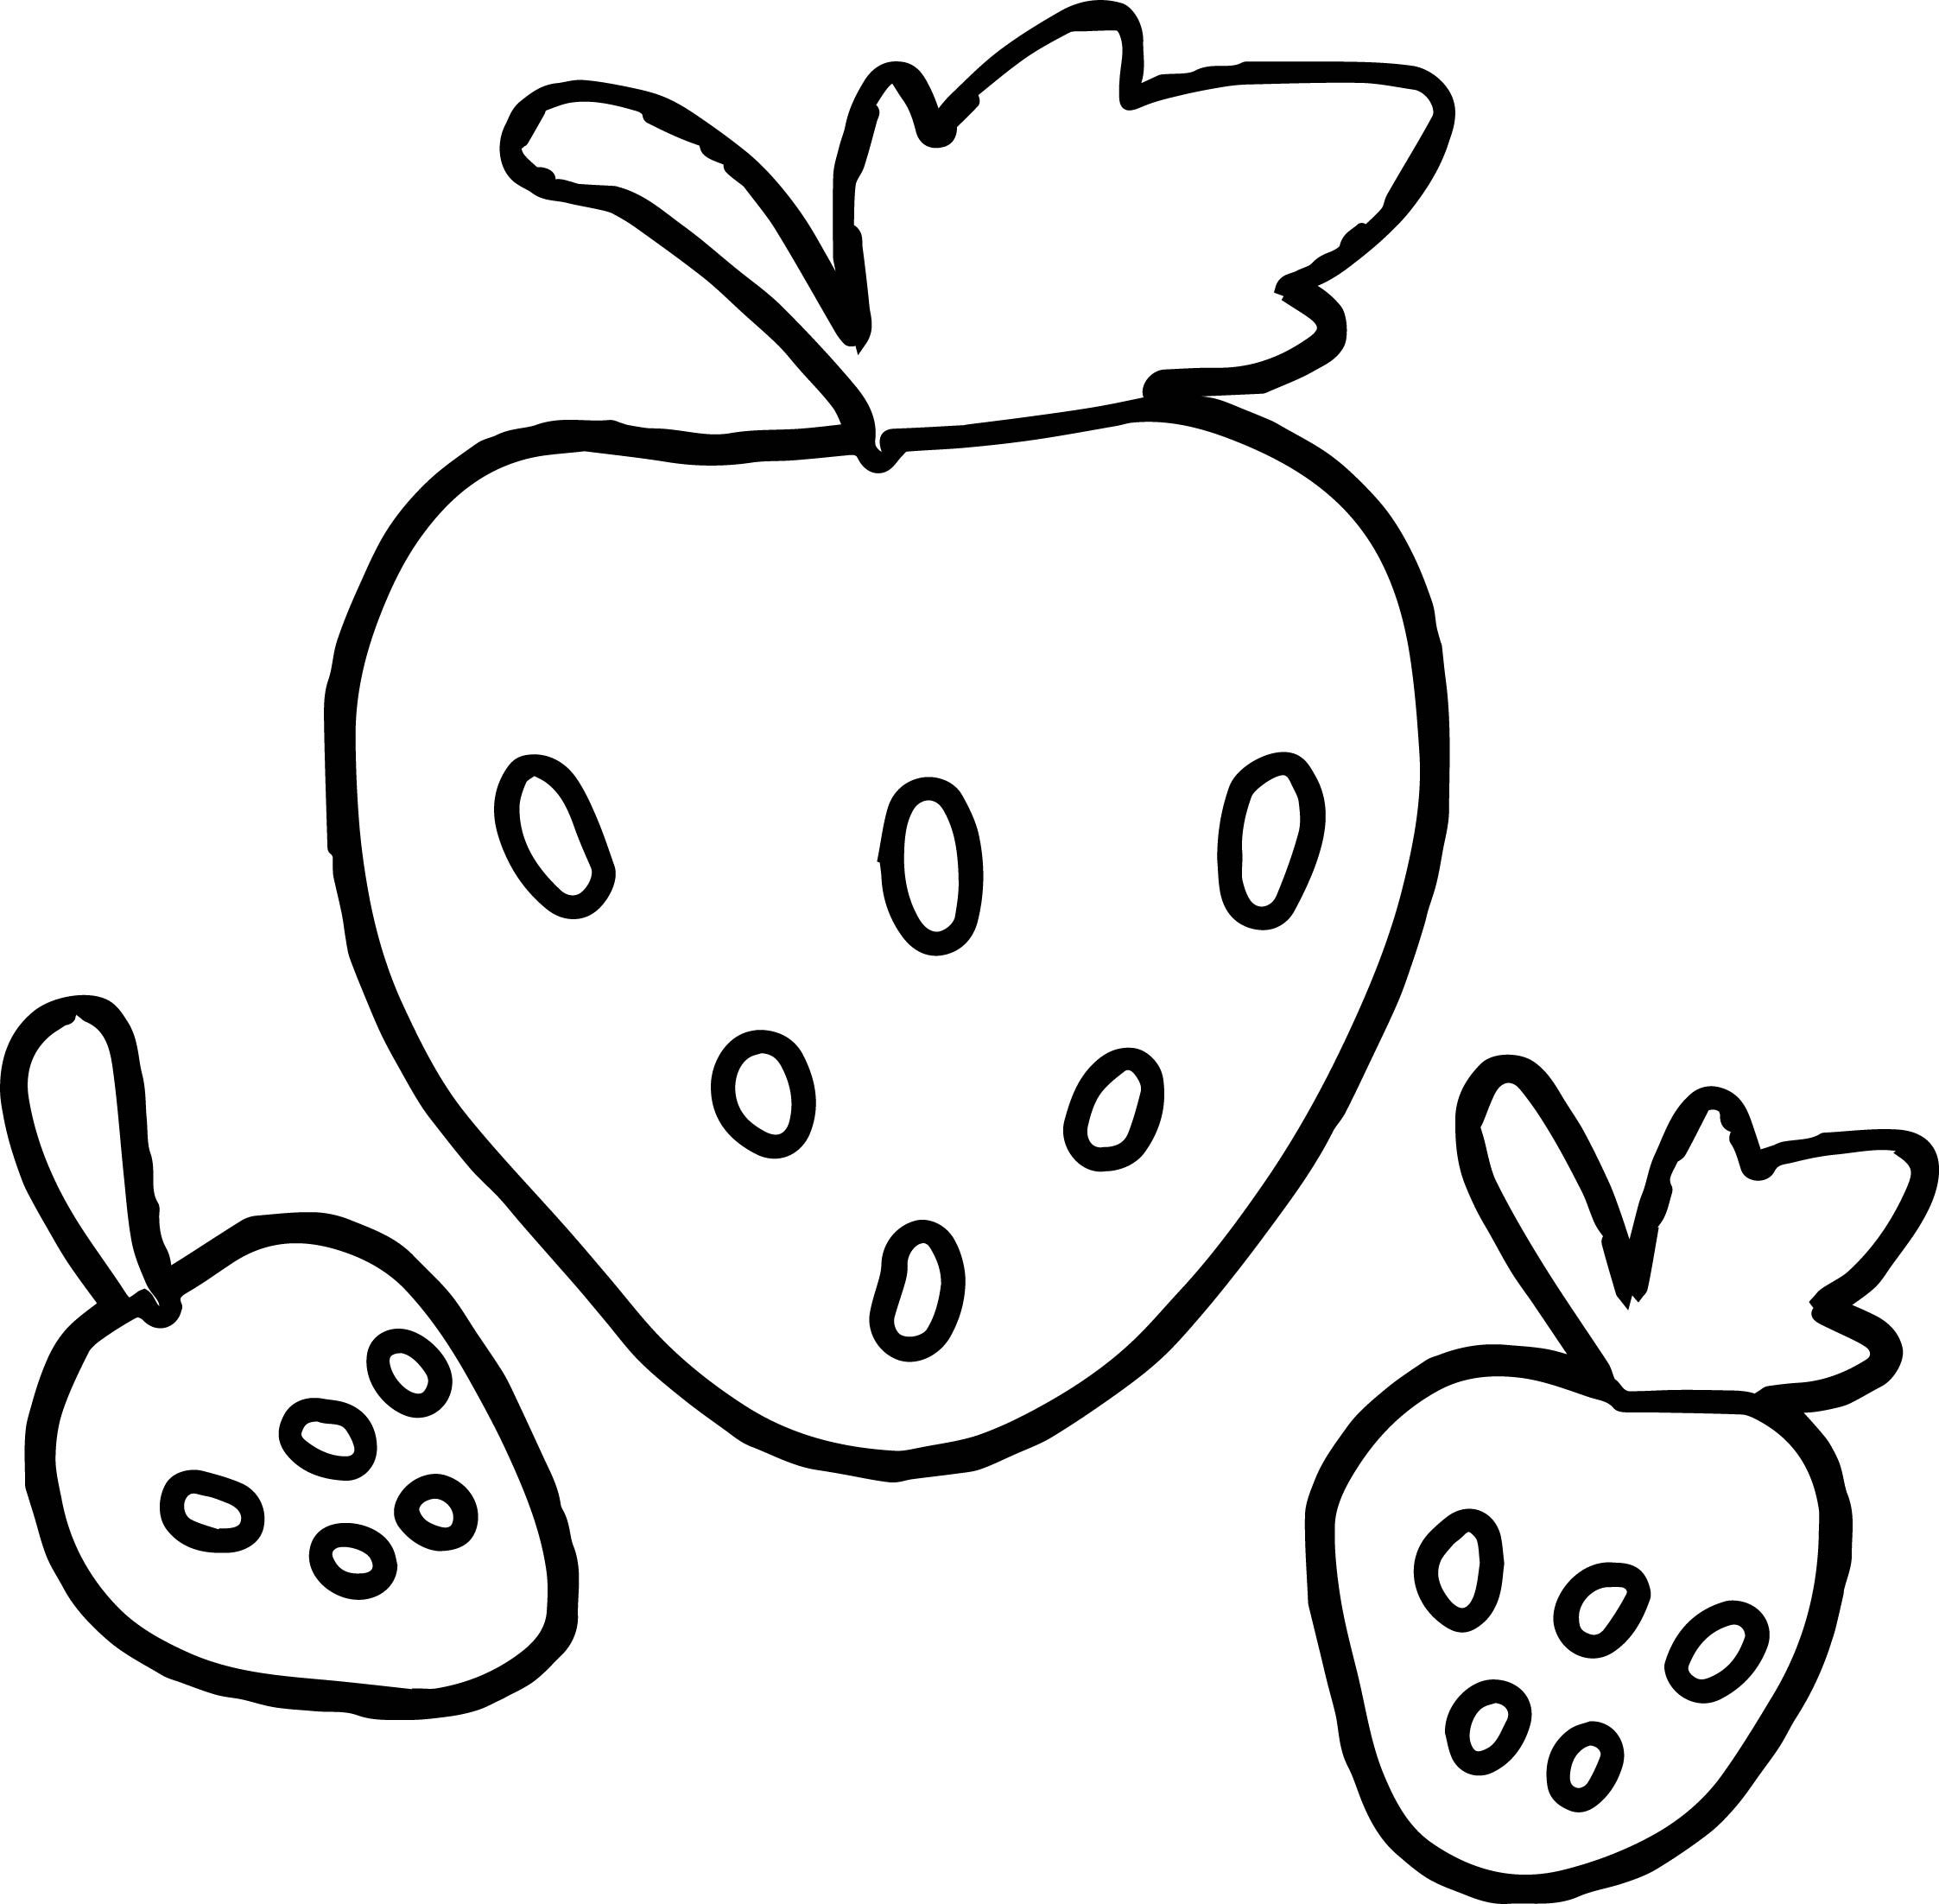 colouring pages of strawberry strawberries coloring pages coloring pages to download strawberry of pages colouring